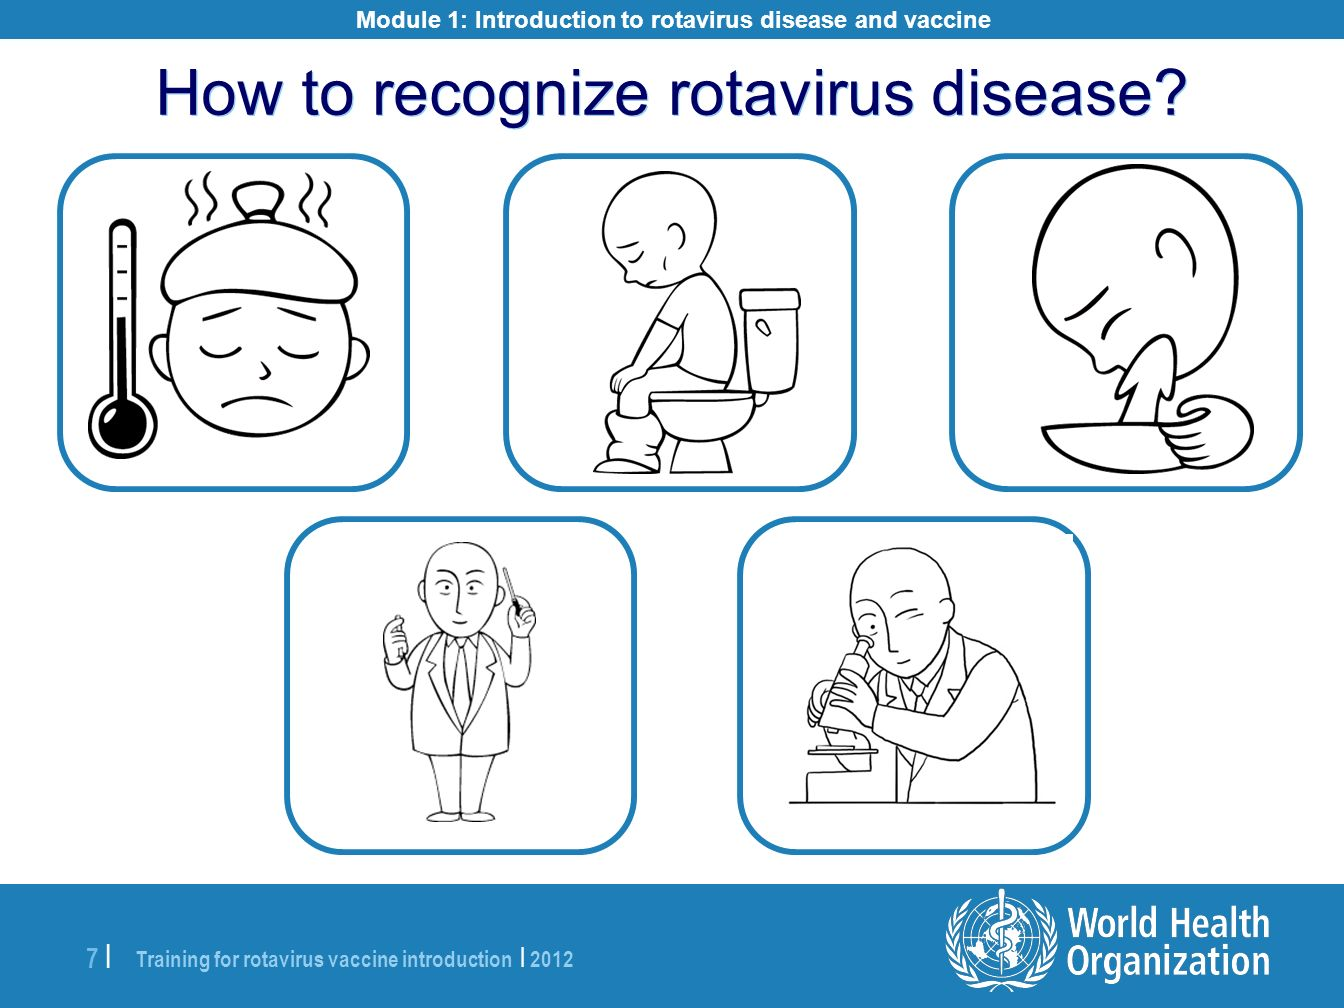 How to recognize rotavirus disease